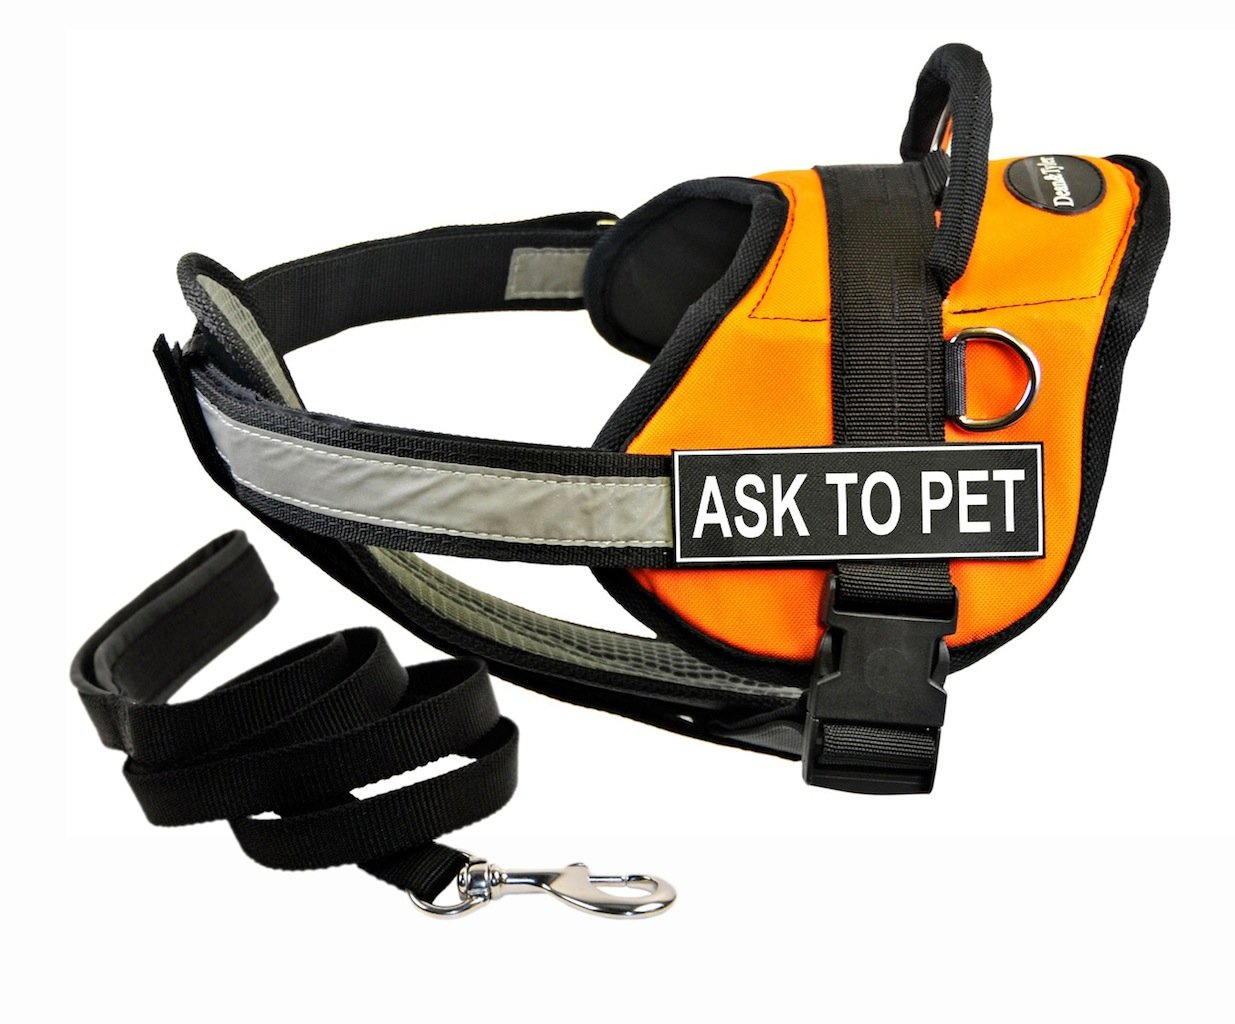 Dean & Tyler DT Works arancia Ask to Pet Imbracatura Imbracatura Imbracatura con Imbottitura sul Petto, Piccolo, e Nero 1,8 m Padded Puppy guinzaglio. b416d6